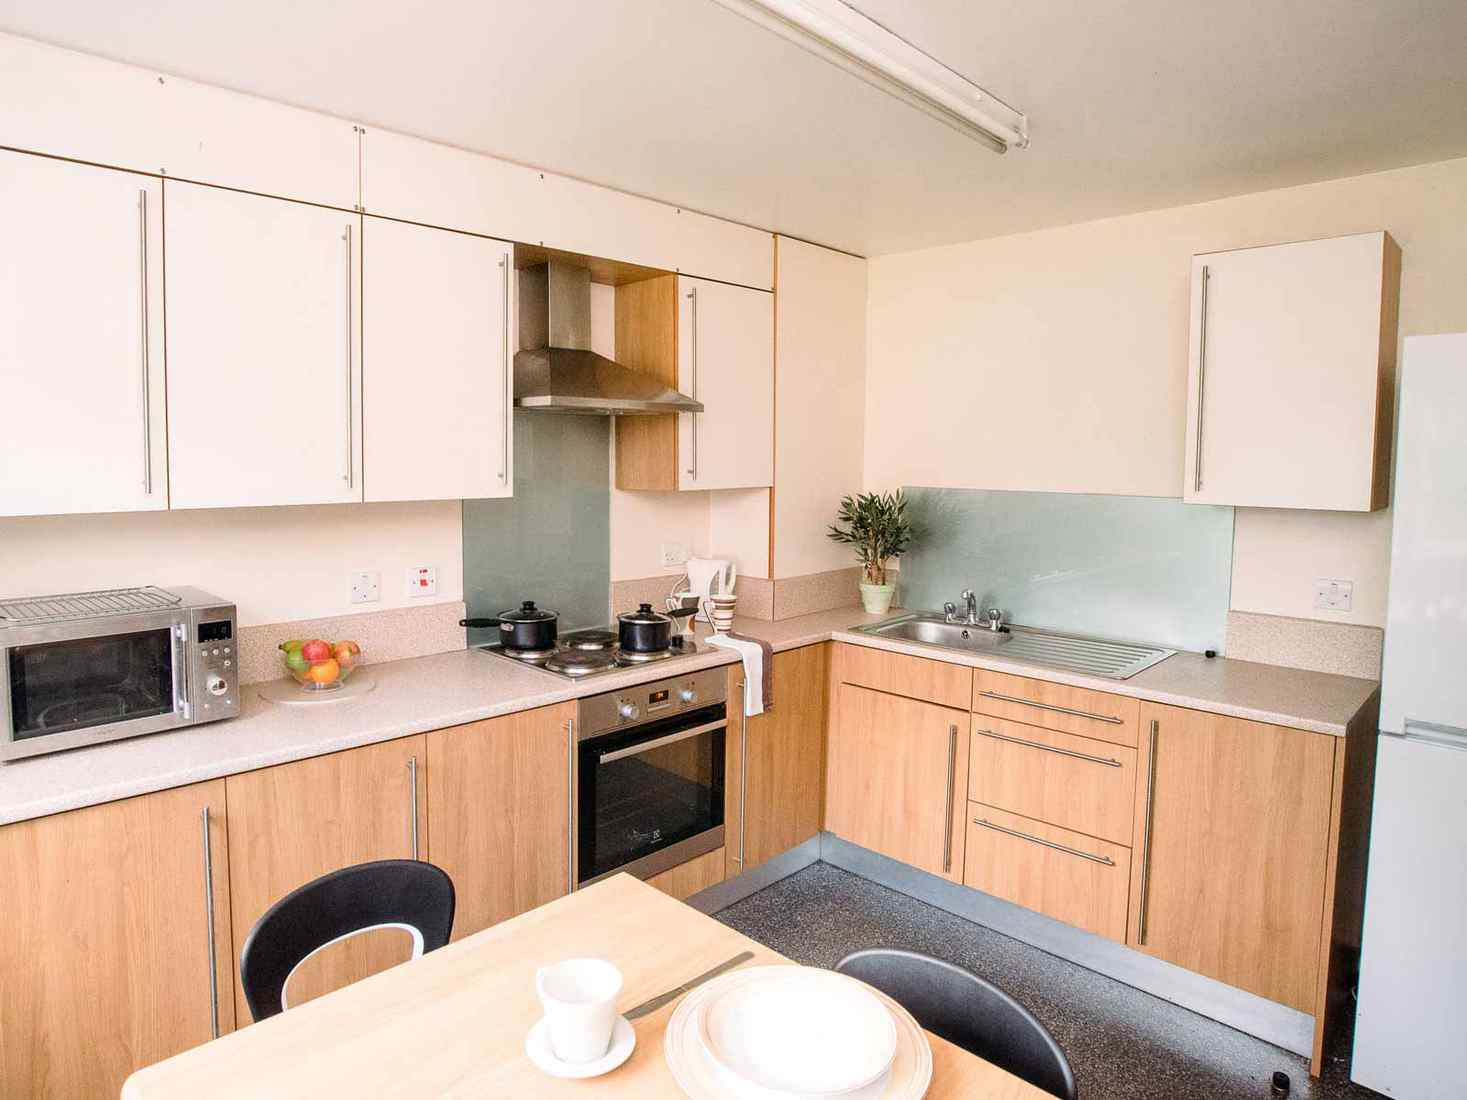 Student kitchen with dining table